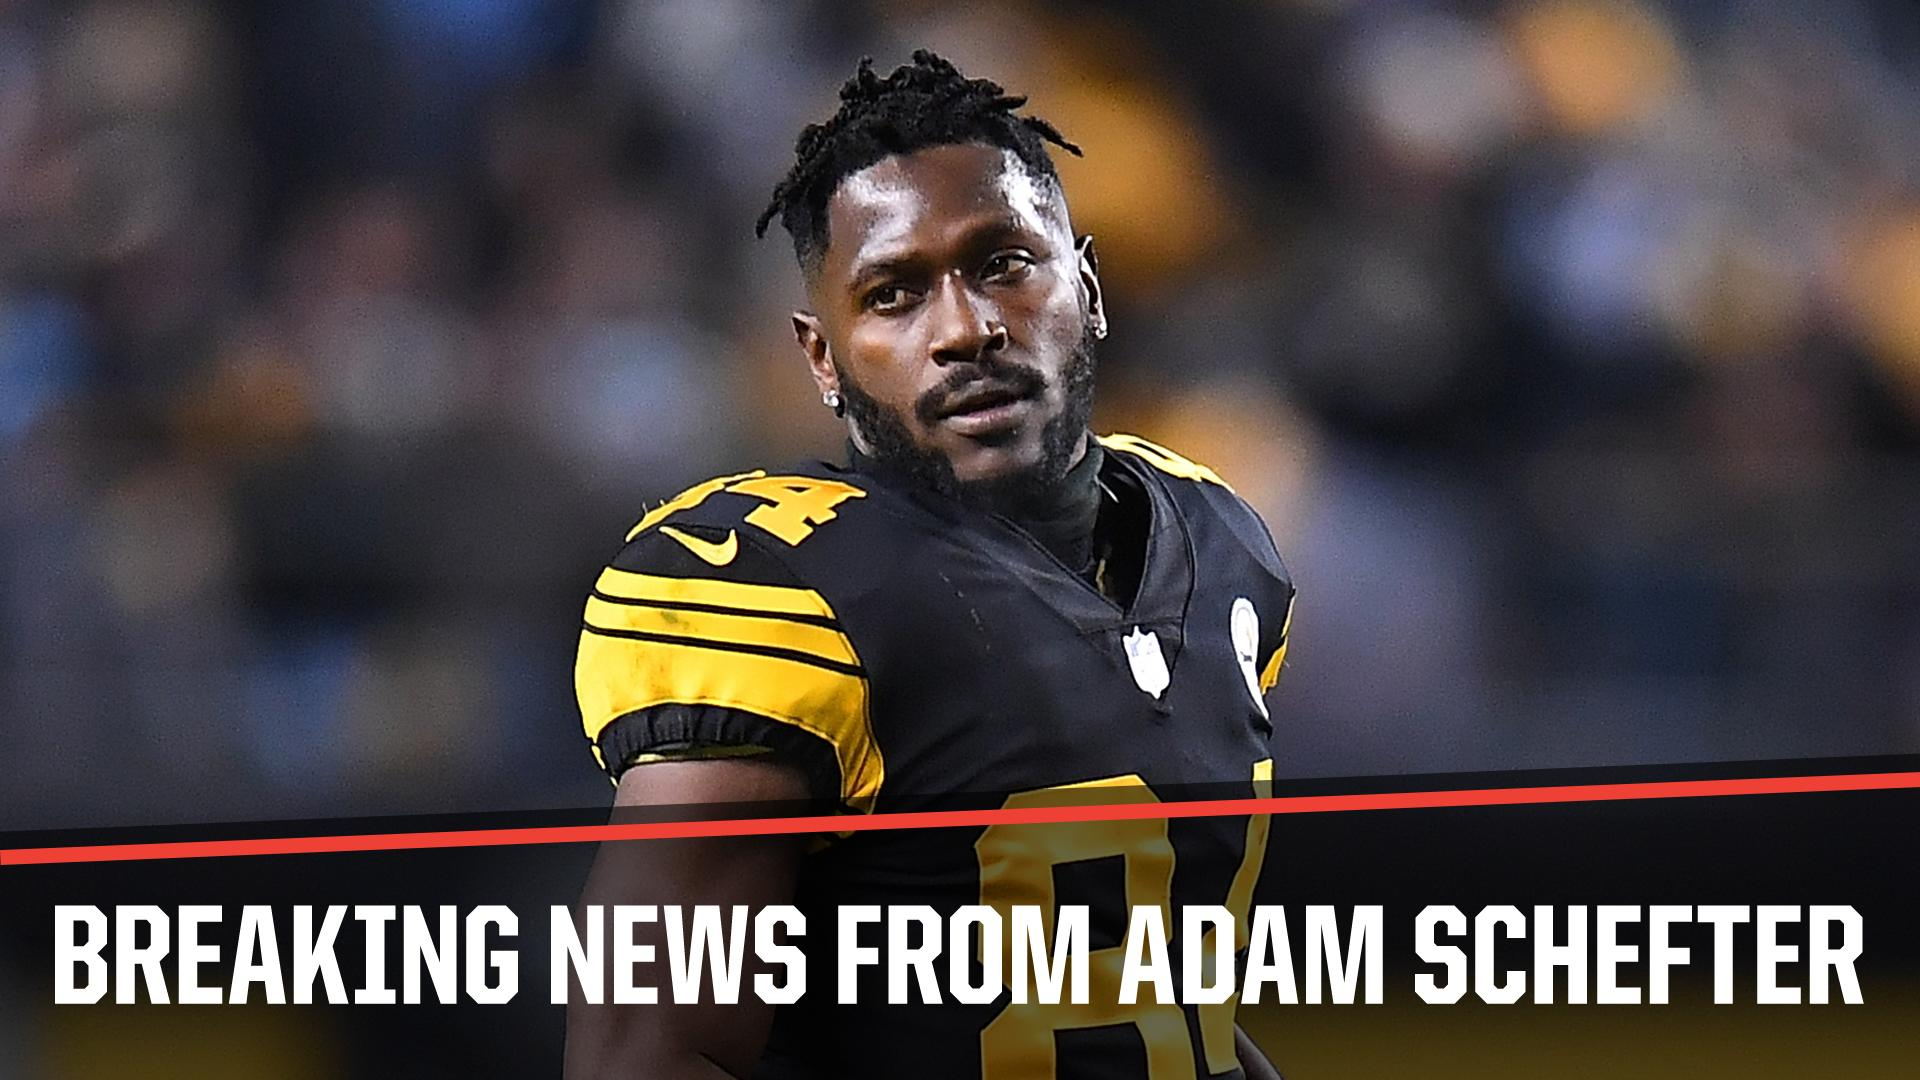 Breaking: Antonio Brown has officially requested a trade from the Steelers, sources told @AdamSchefter. https://t.co/GtUZSVF3lH